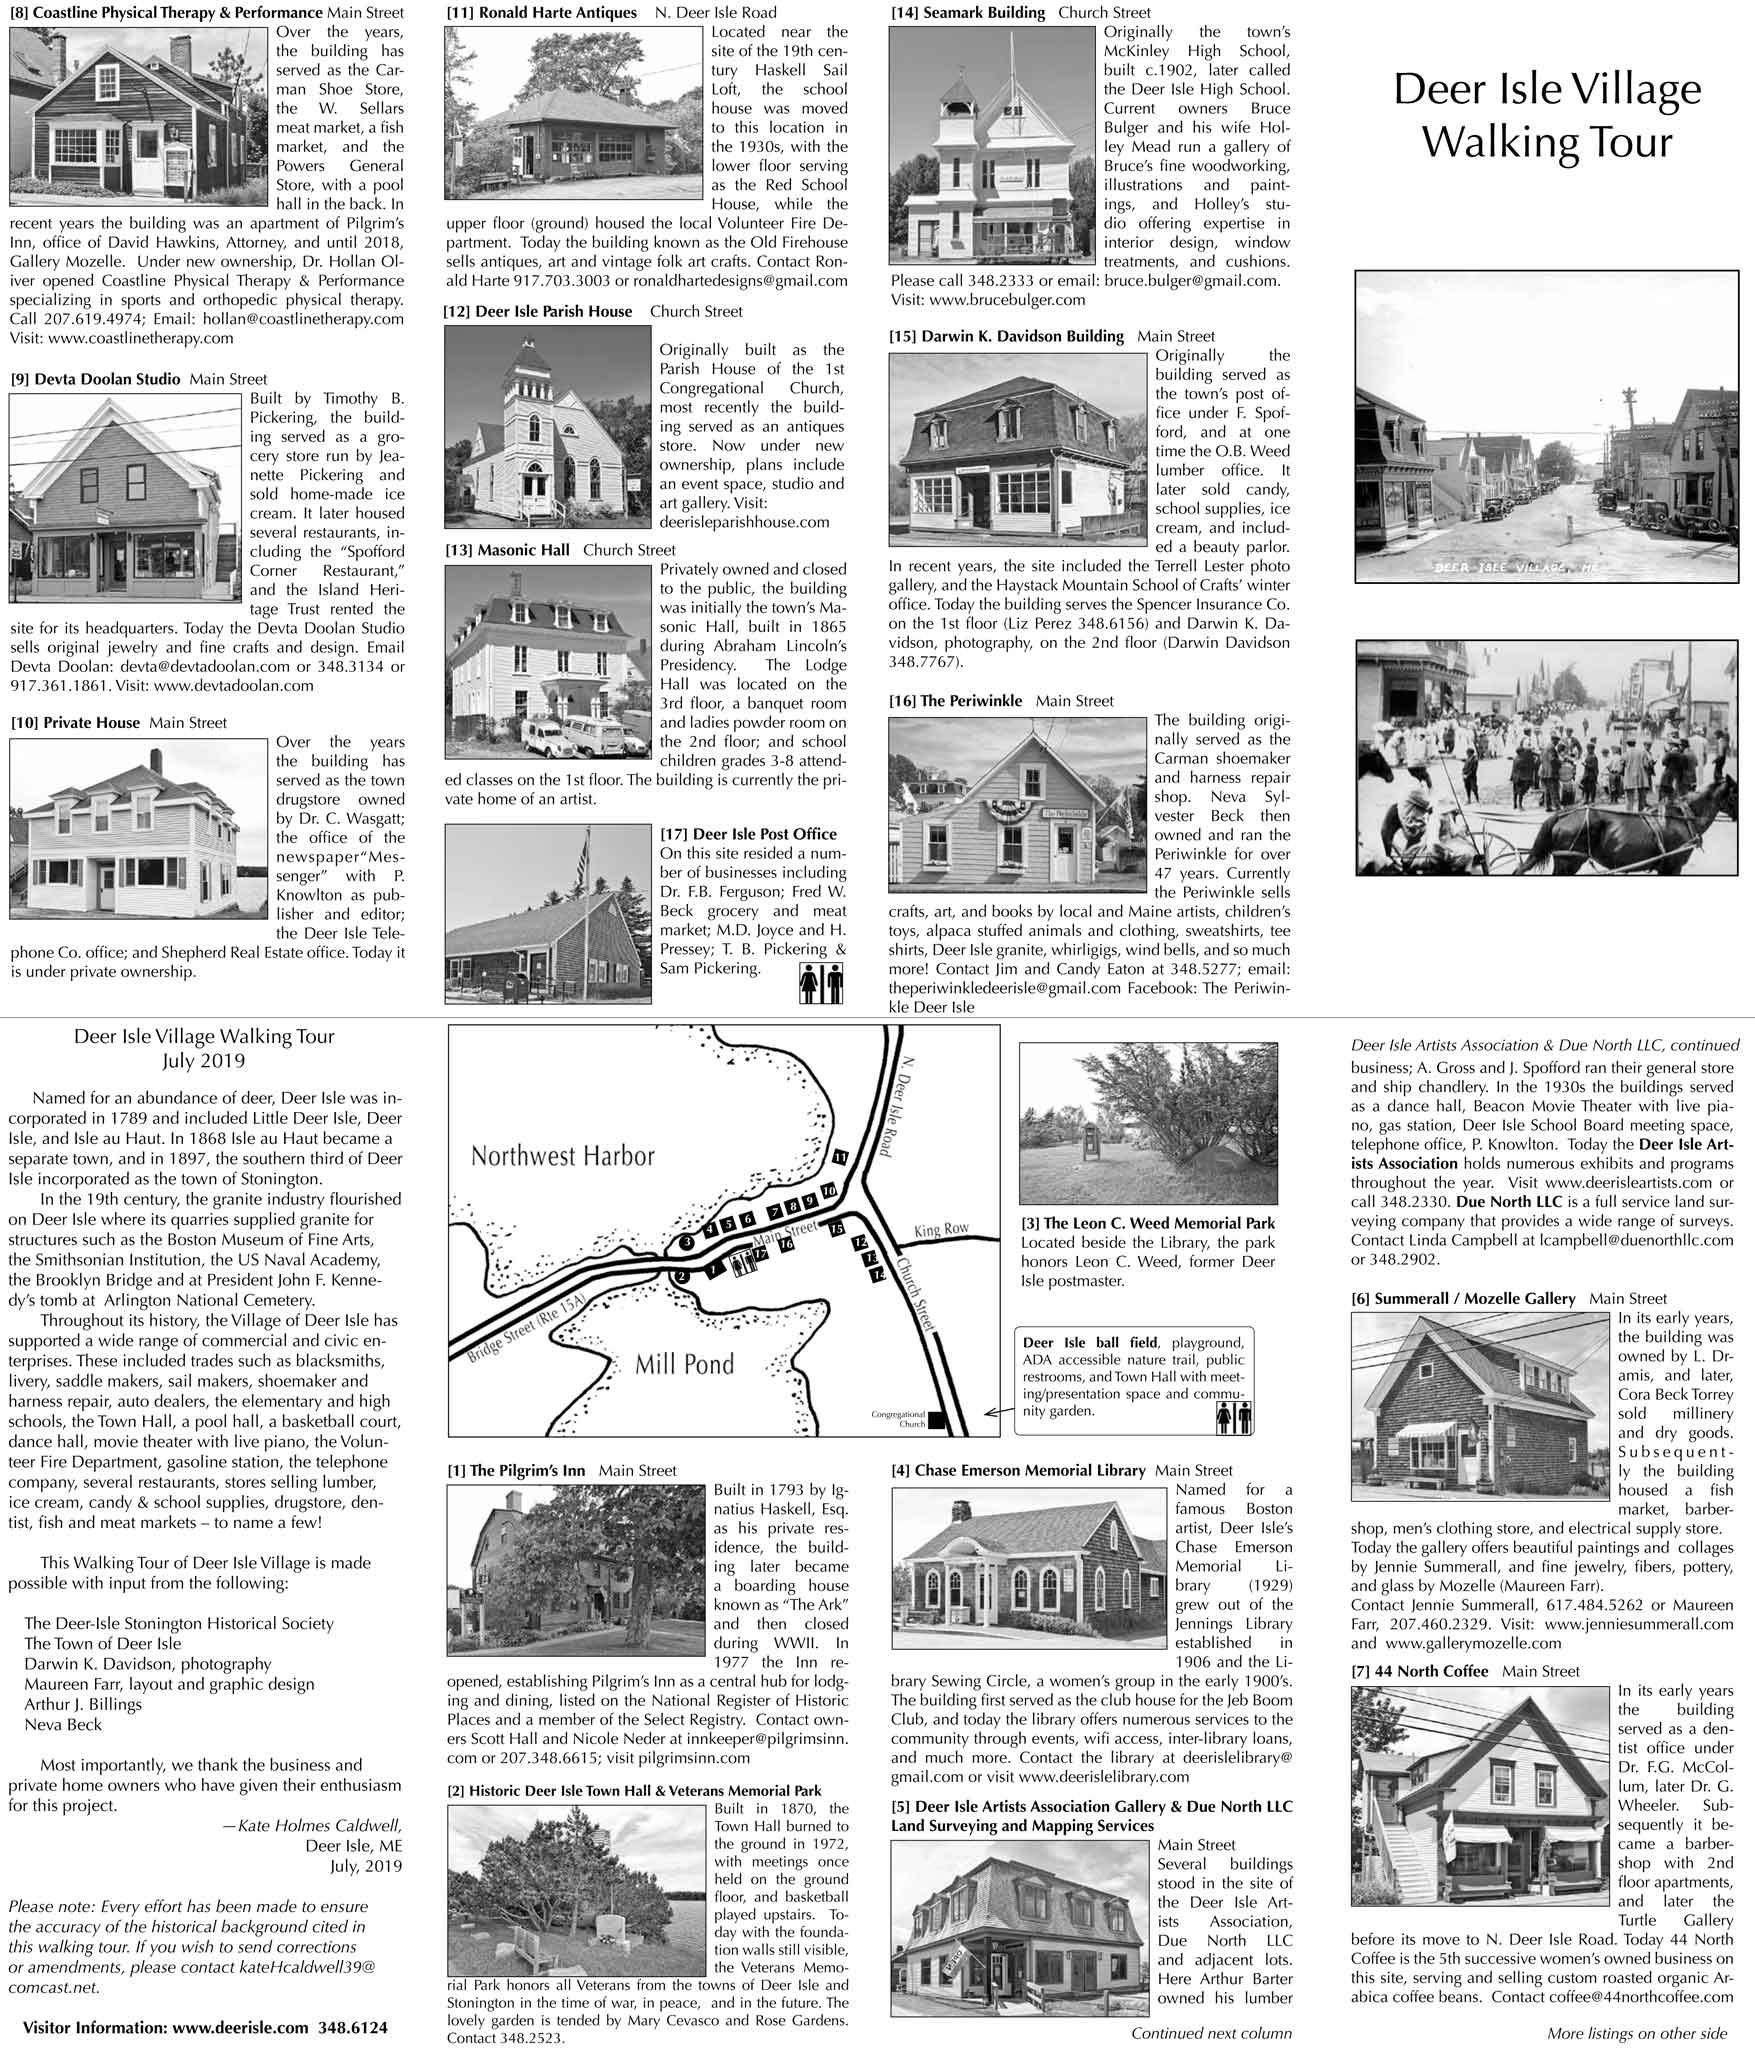 Deer Isle Village Walking Tour